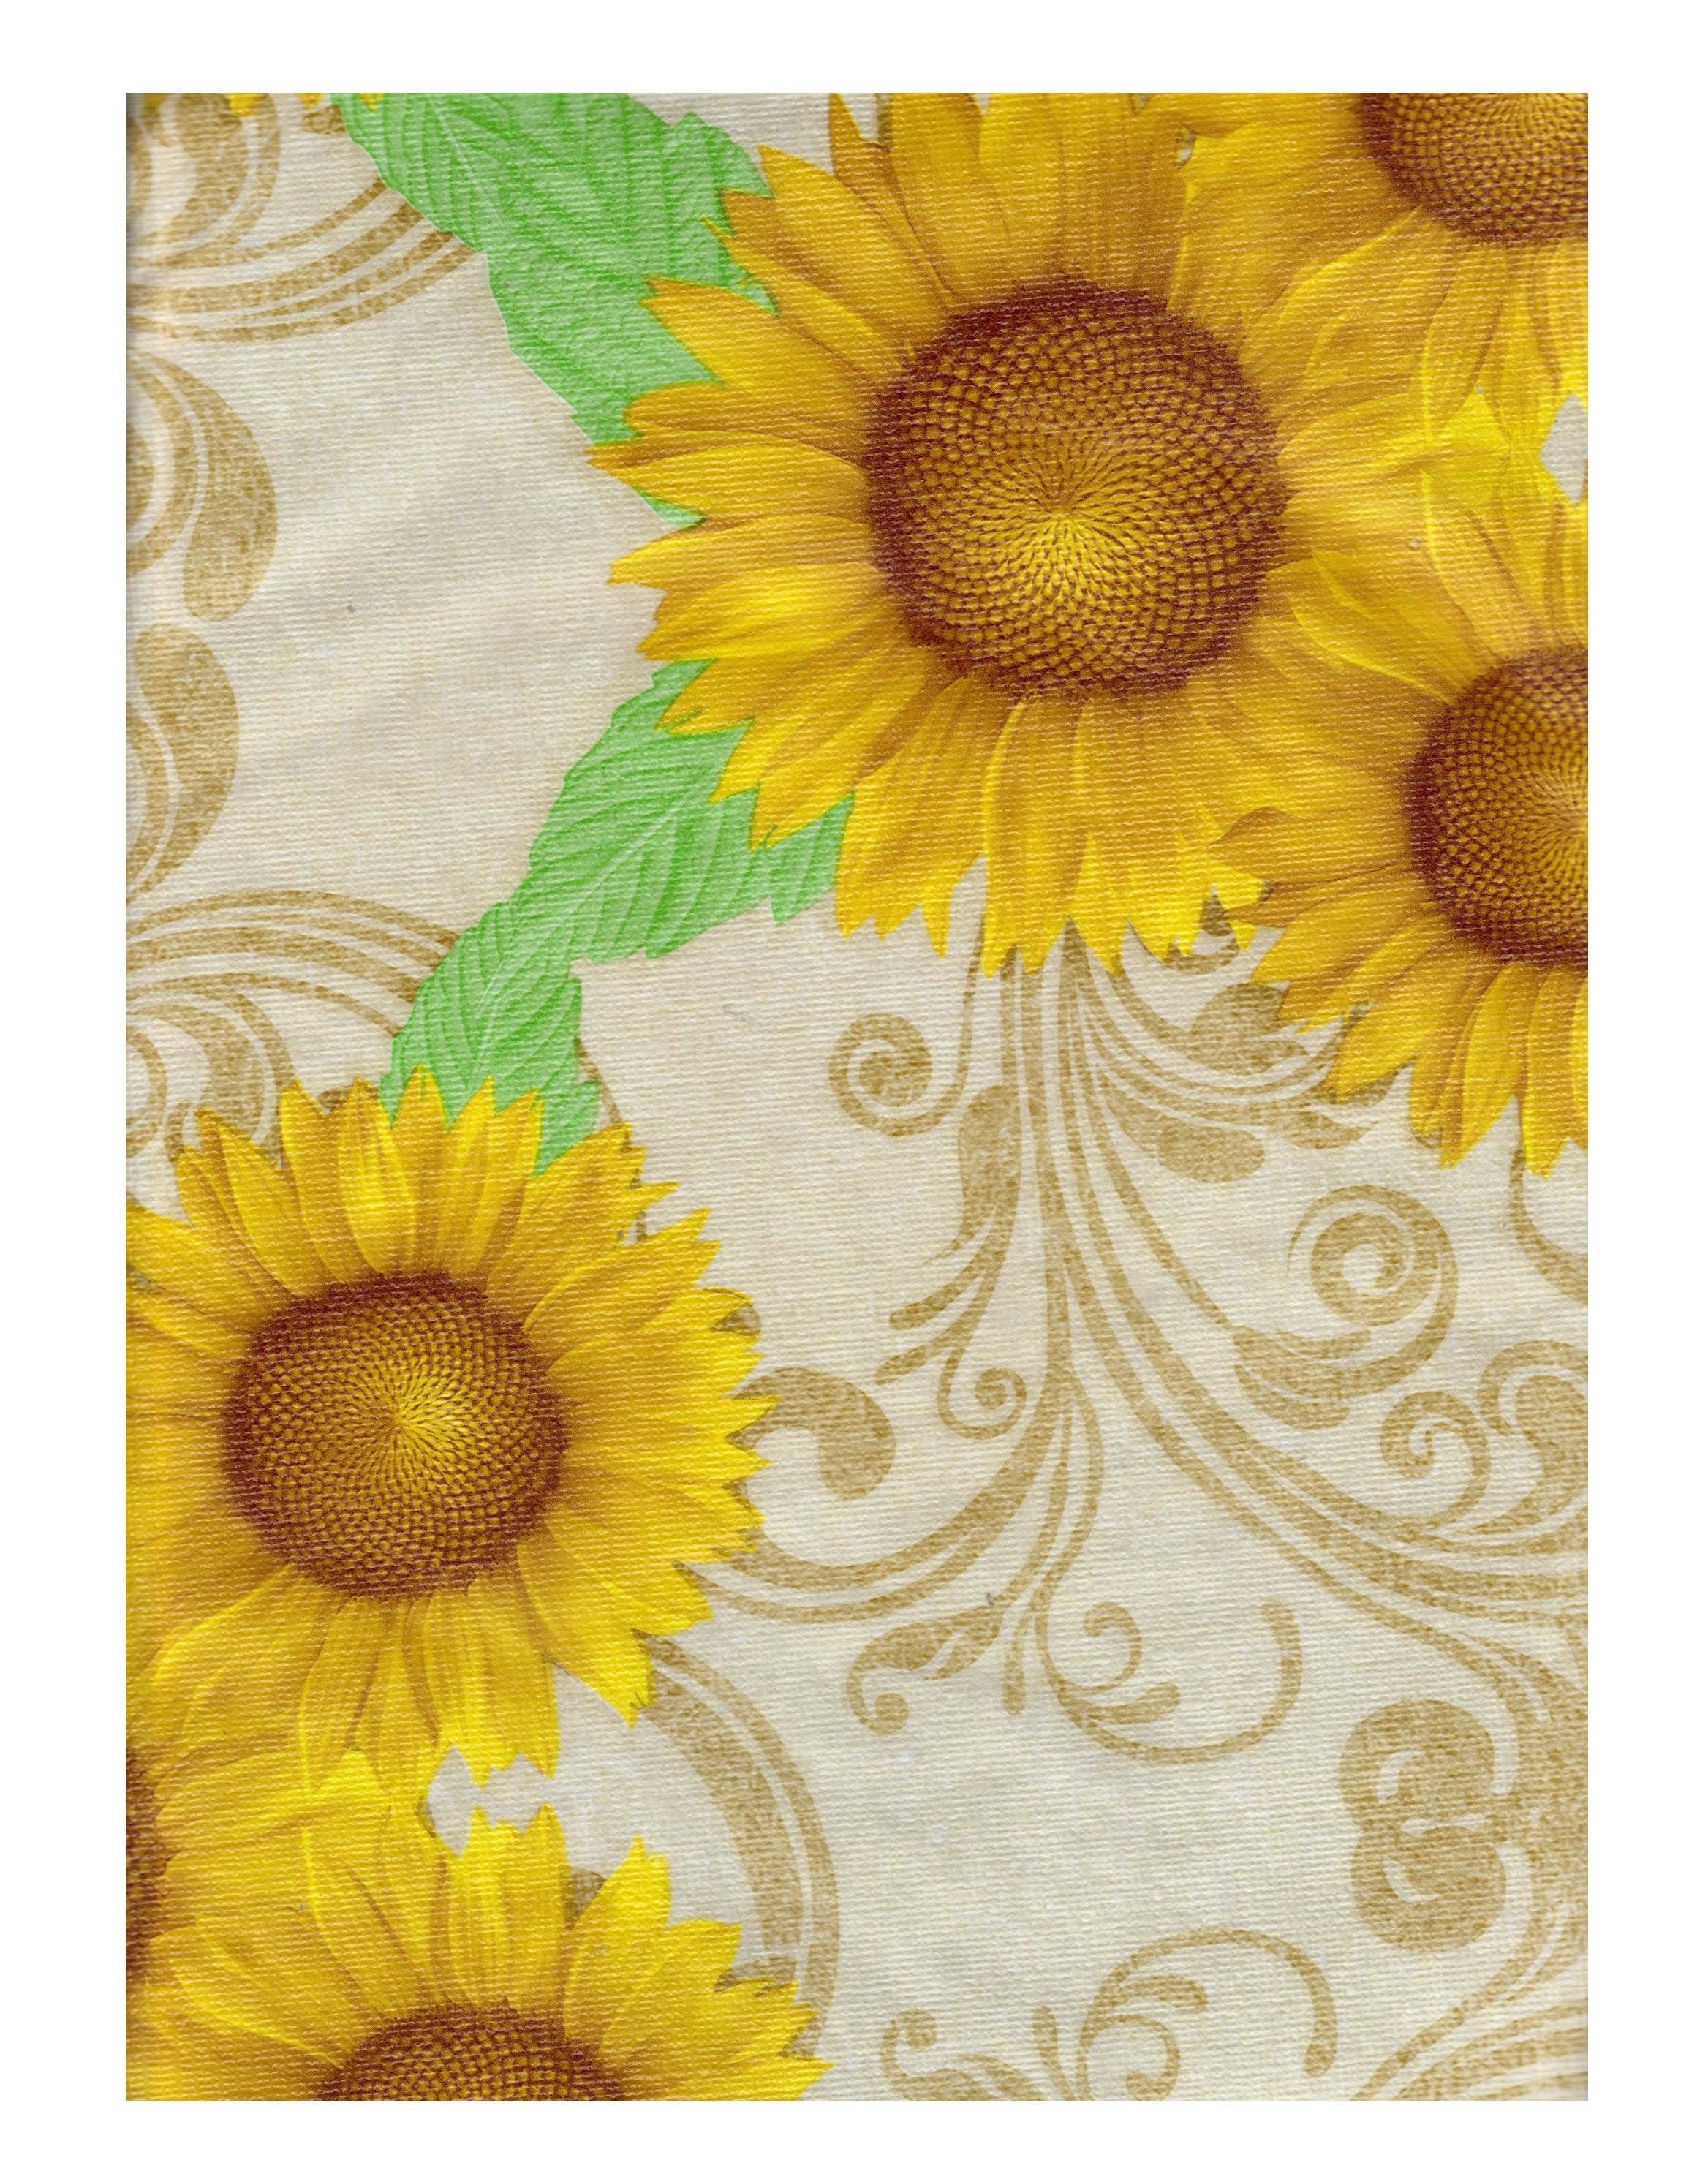 Sunflower Vinyl Tablecloth With Flannel Backing Ed Table Cover Elastic Around The Edge To Hold It In Place 60 Round